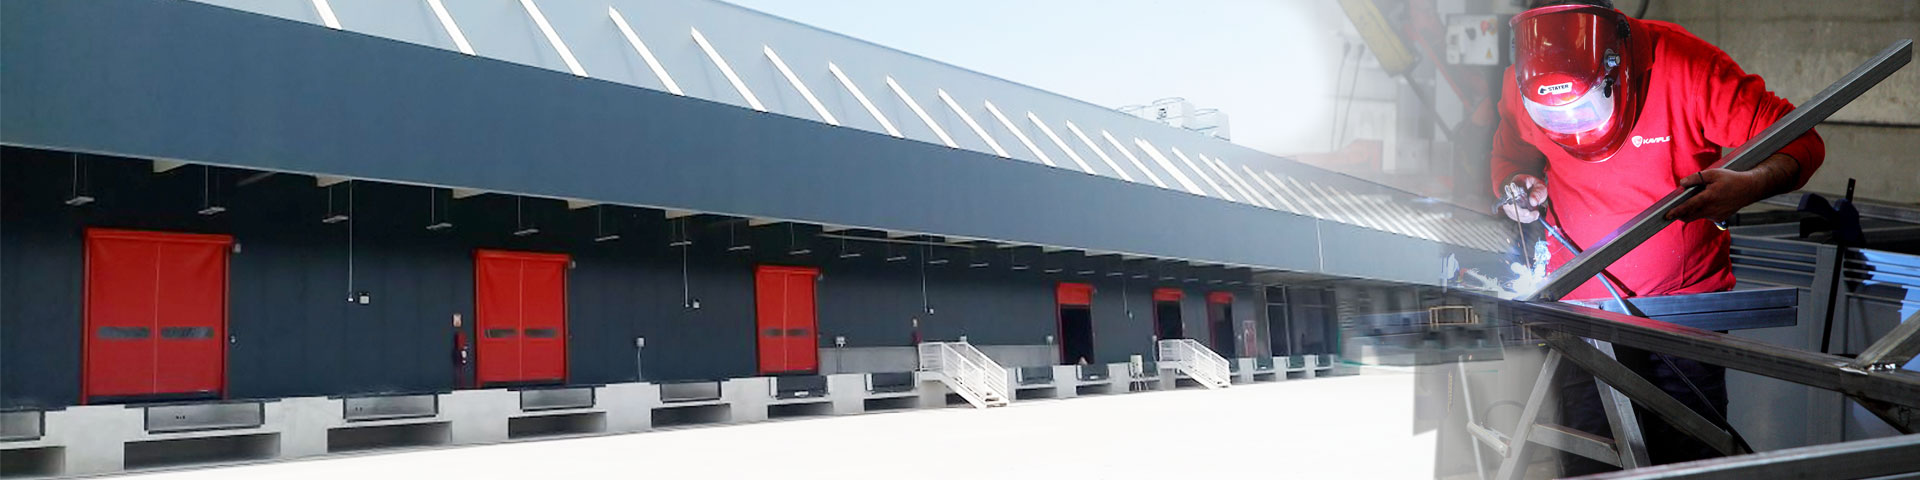 industrial doors manufacturer